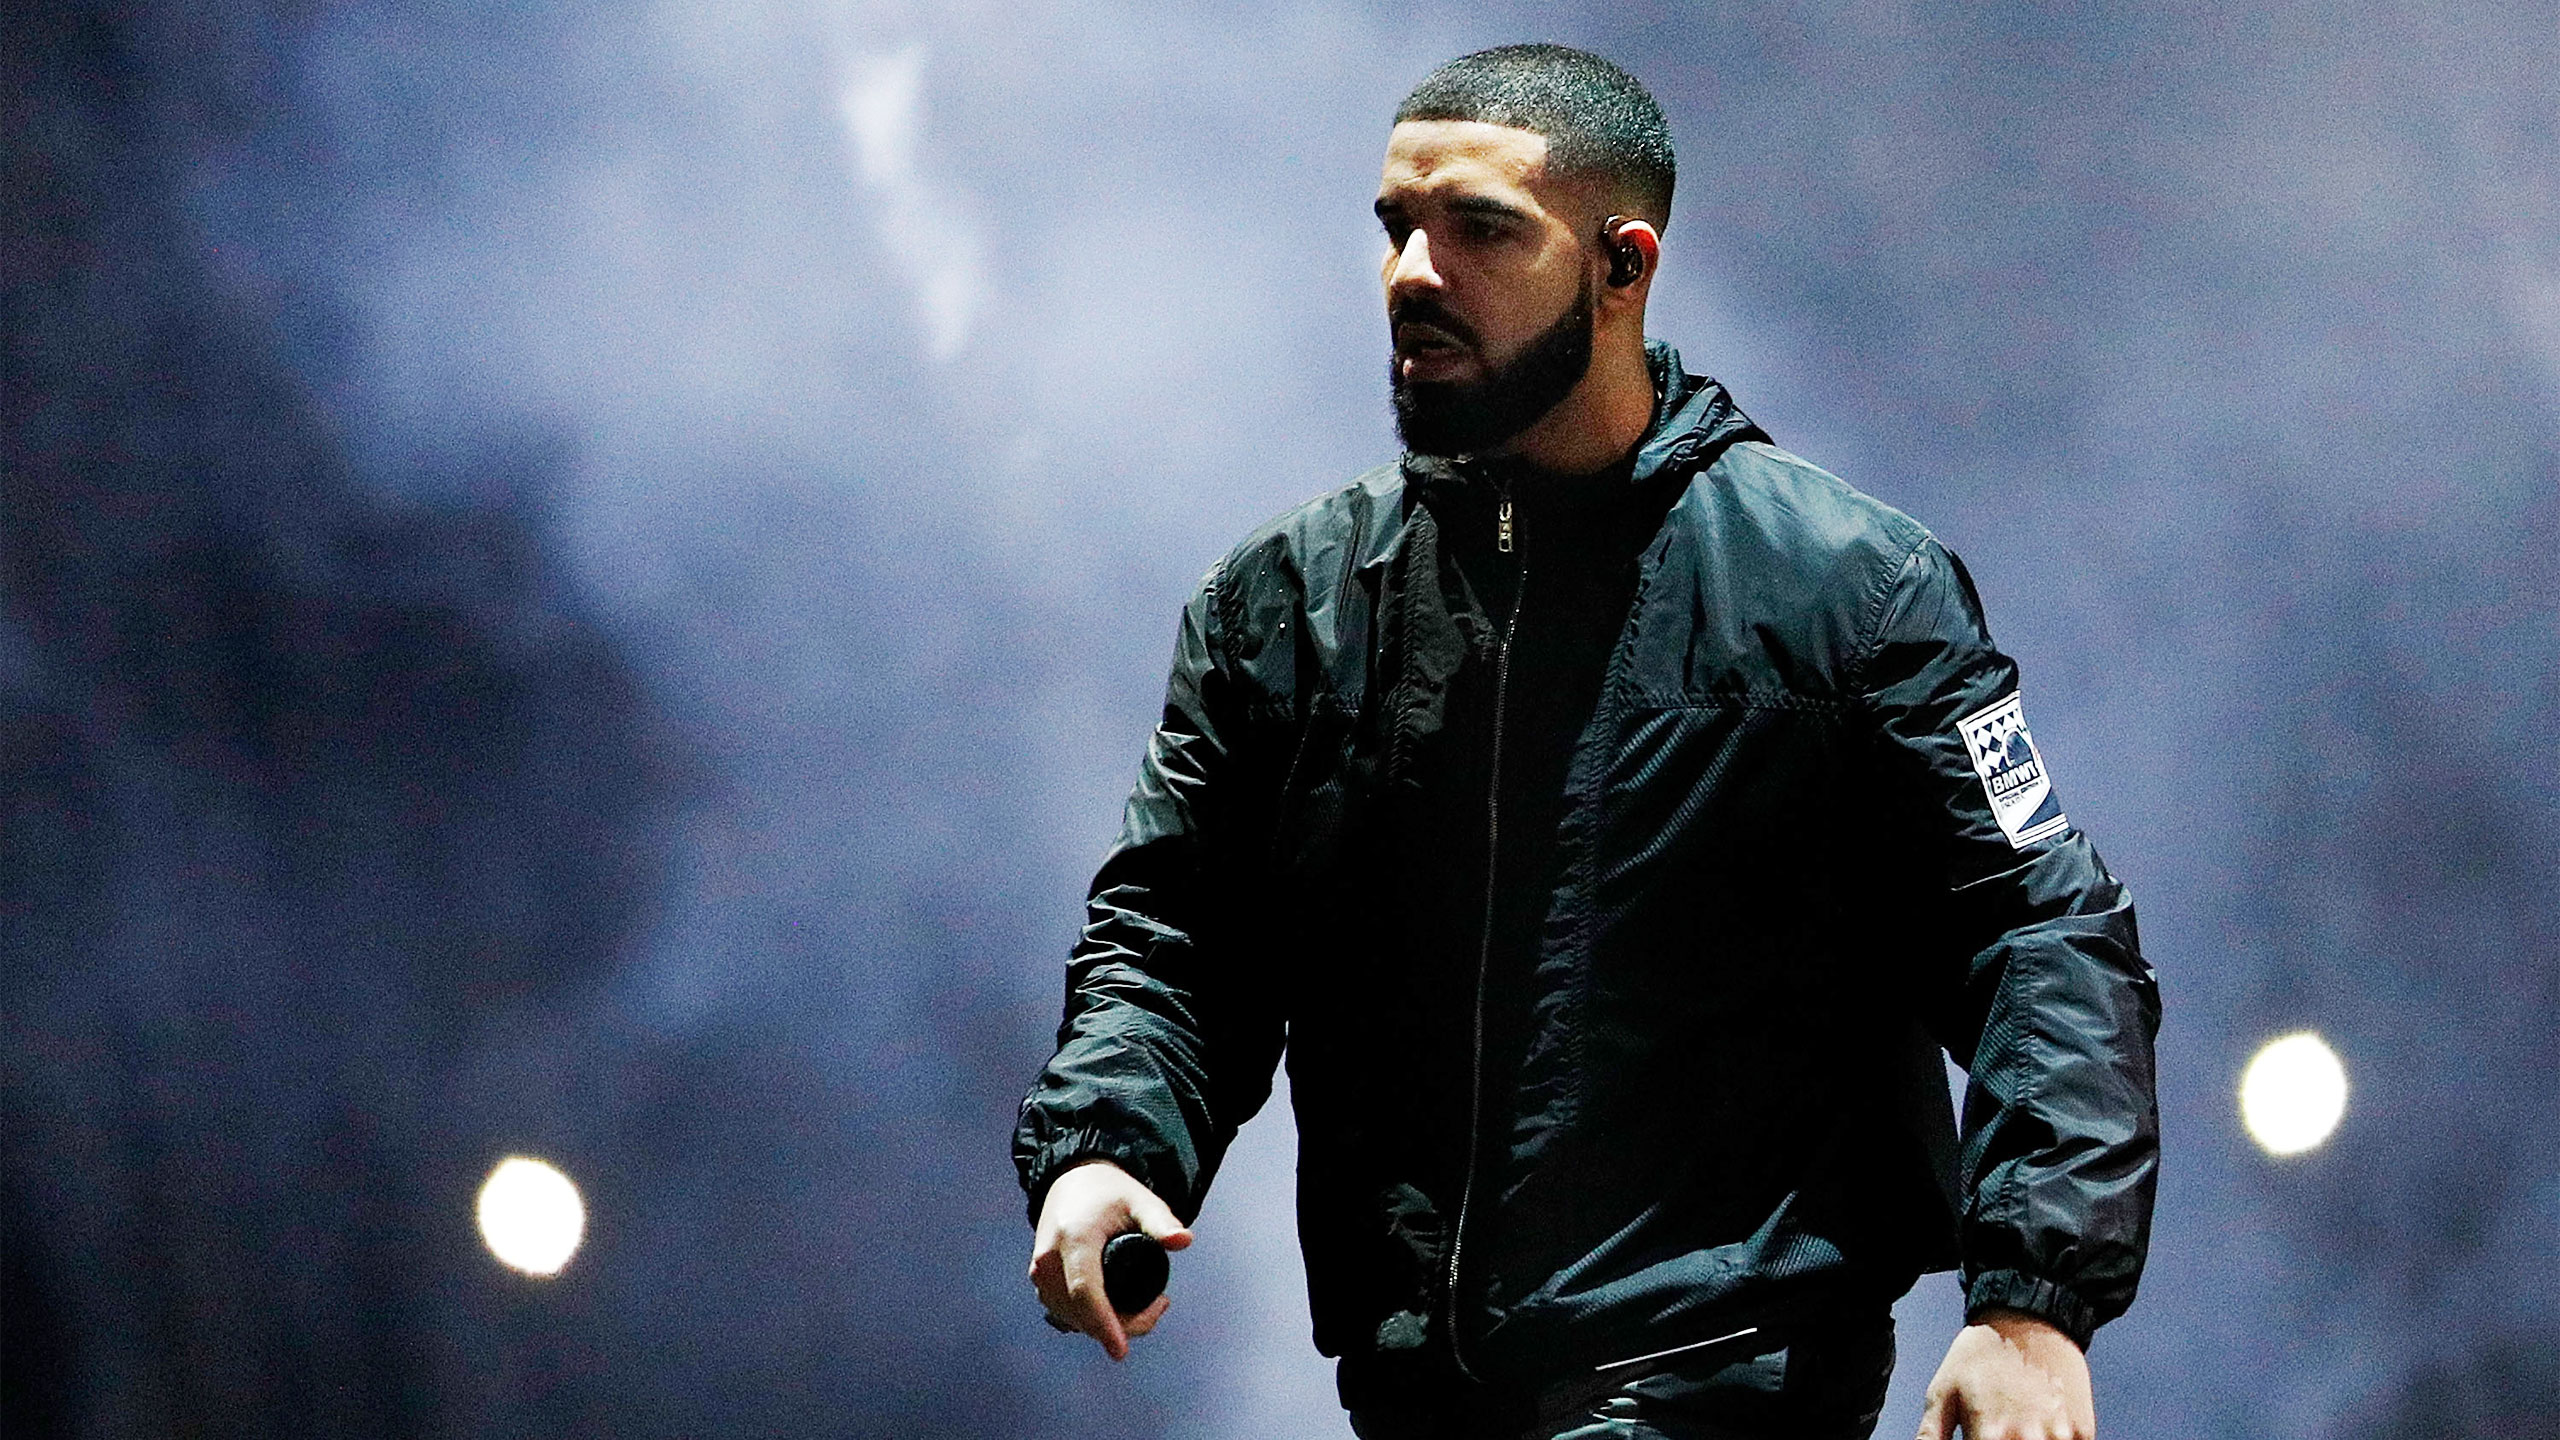 Drake Sort Of Confirms New Adidas Deal 171115 han drake lede v5q7mj